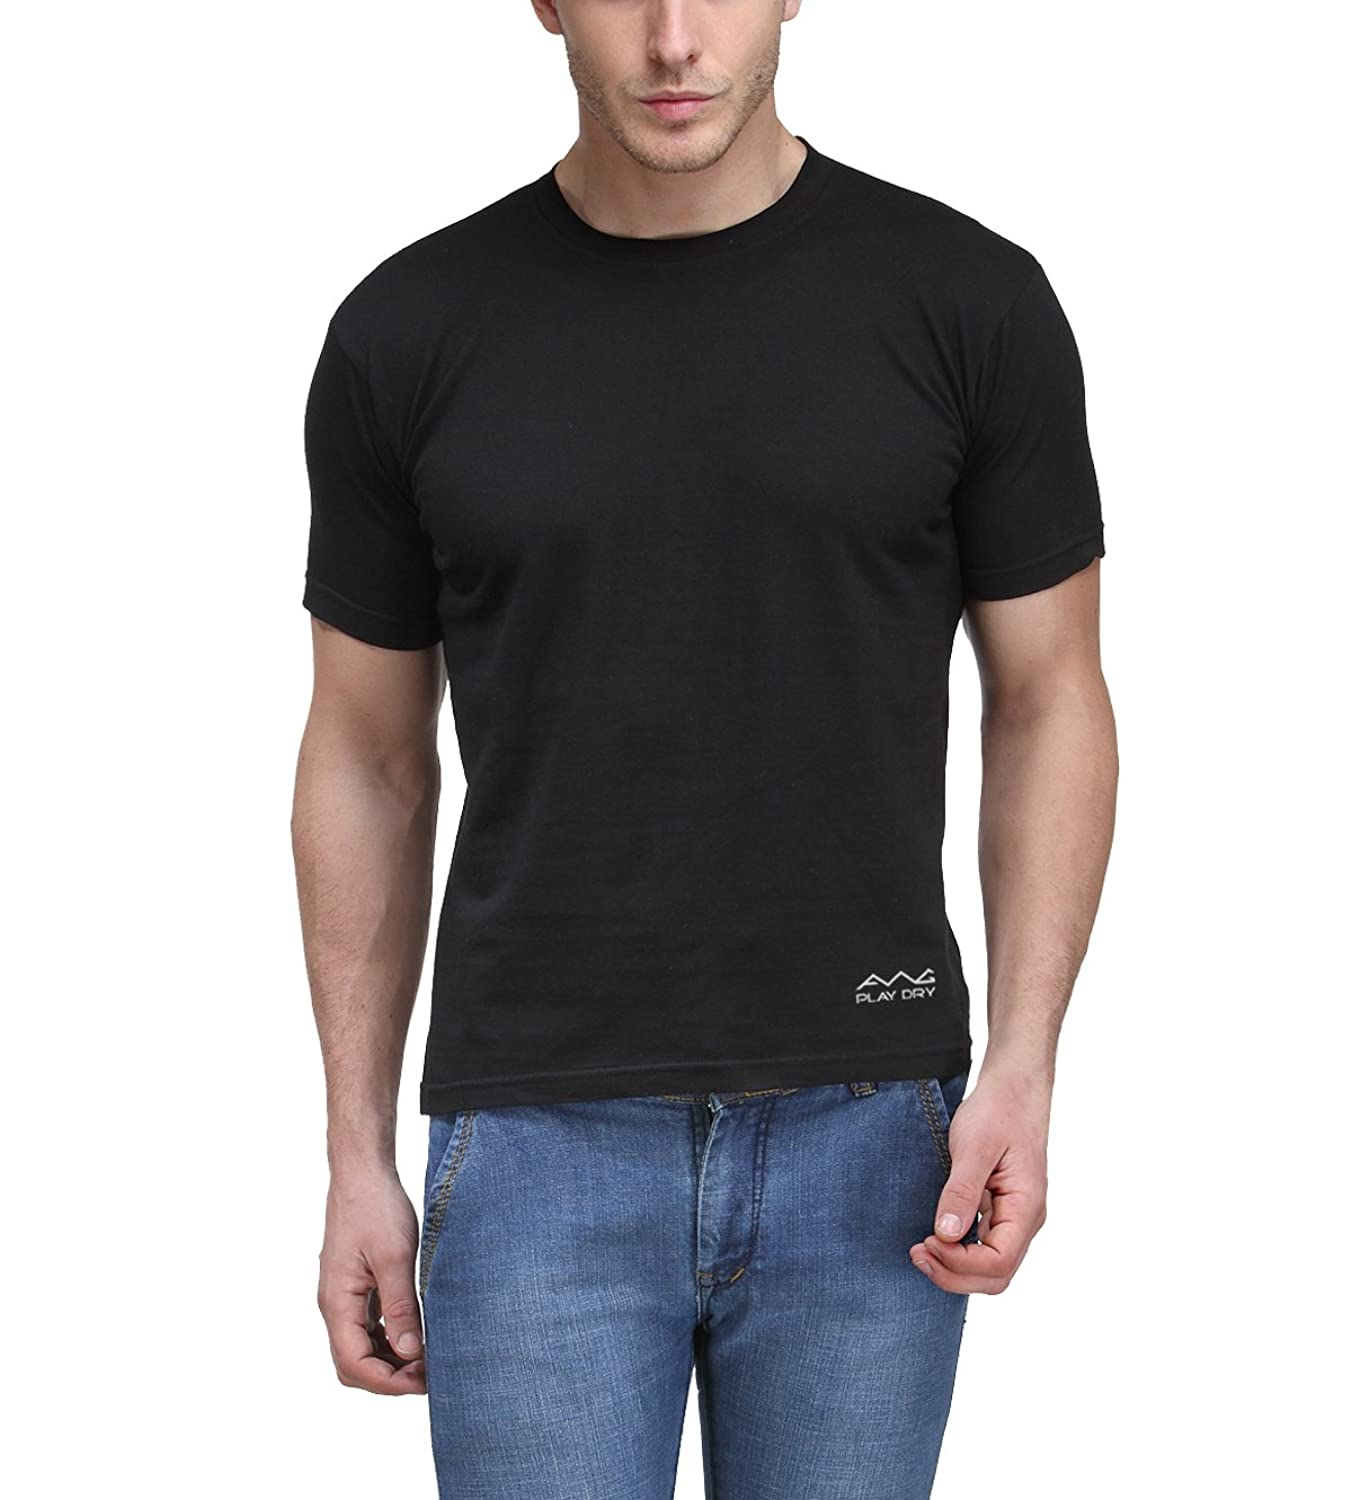 Scott International T-Shirt